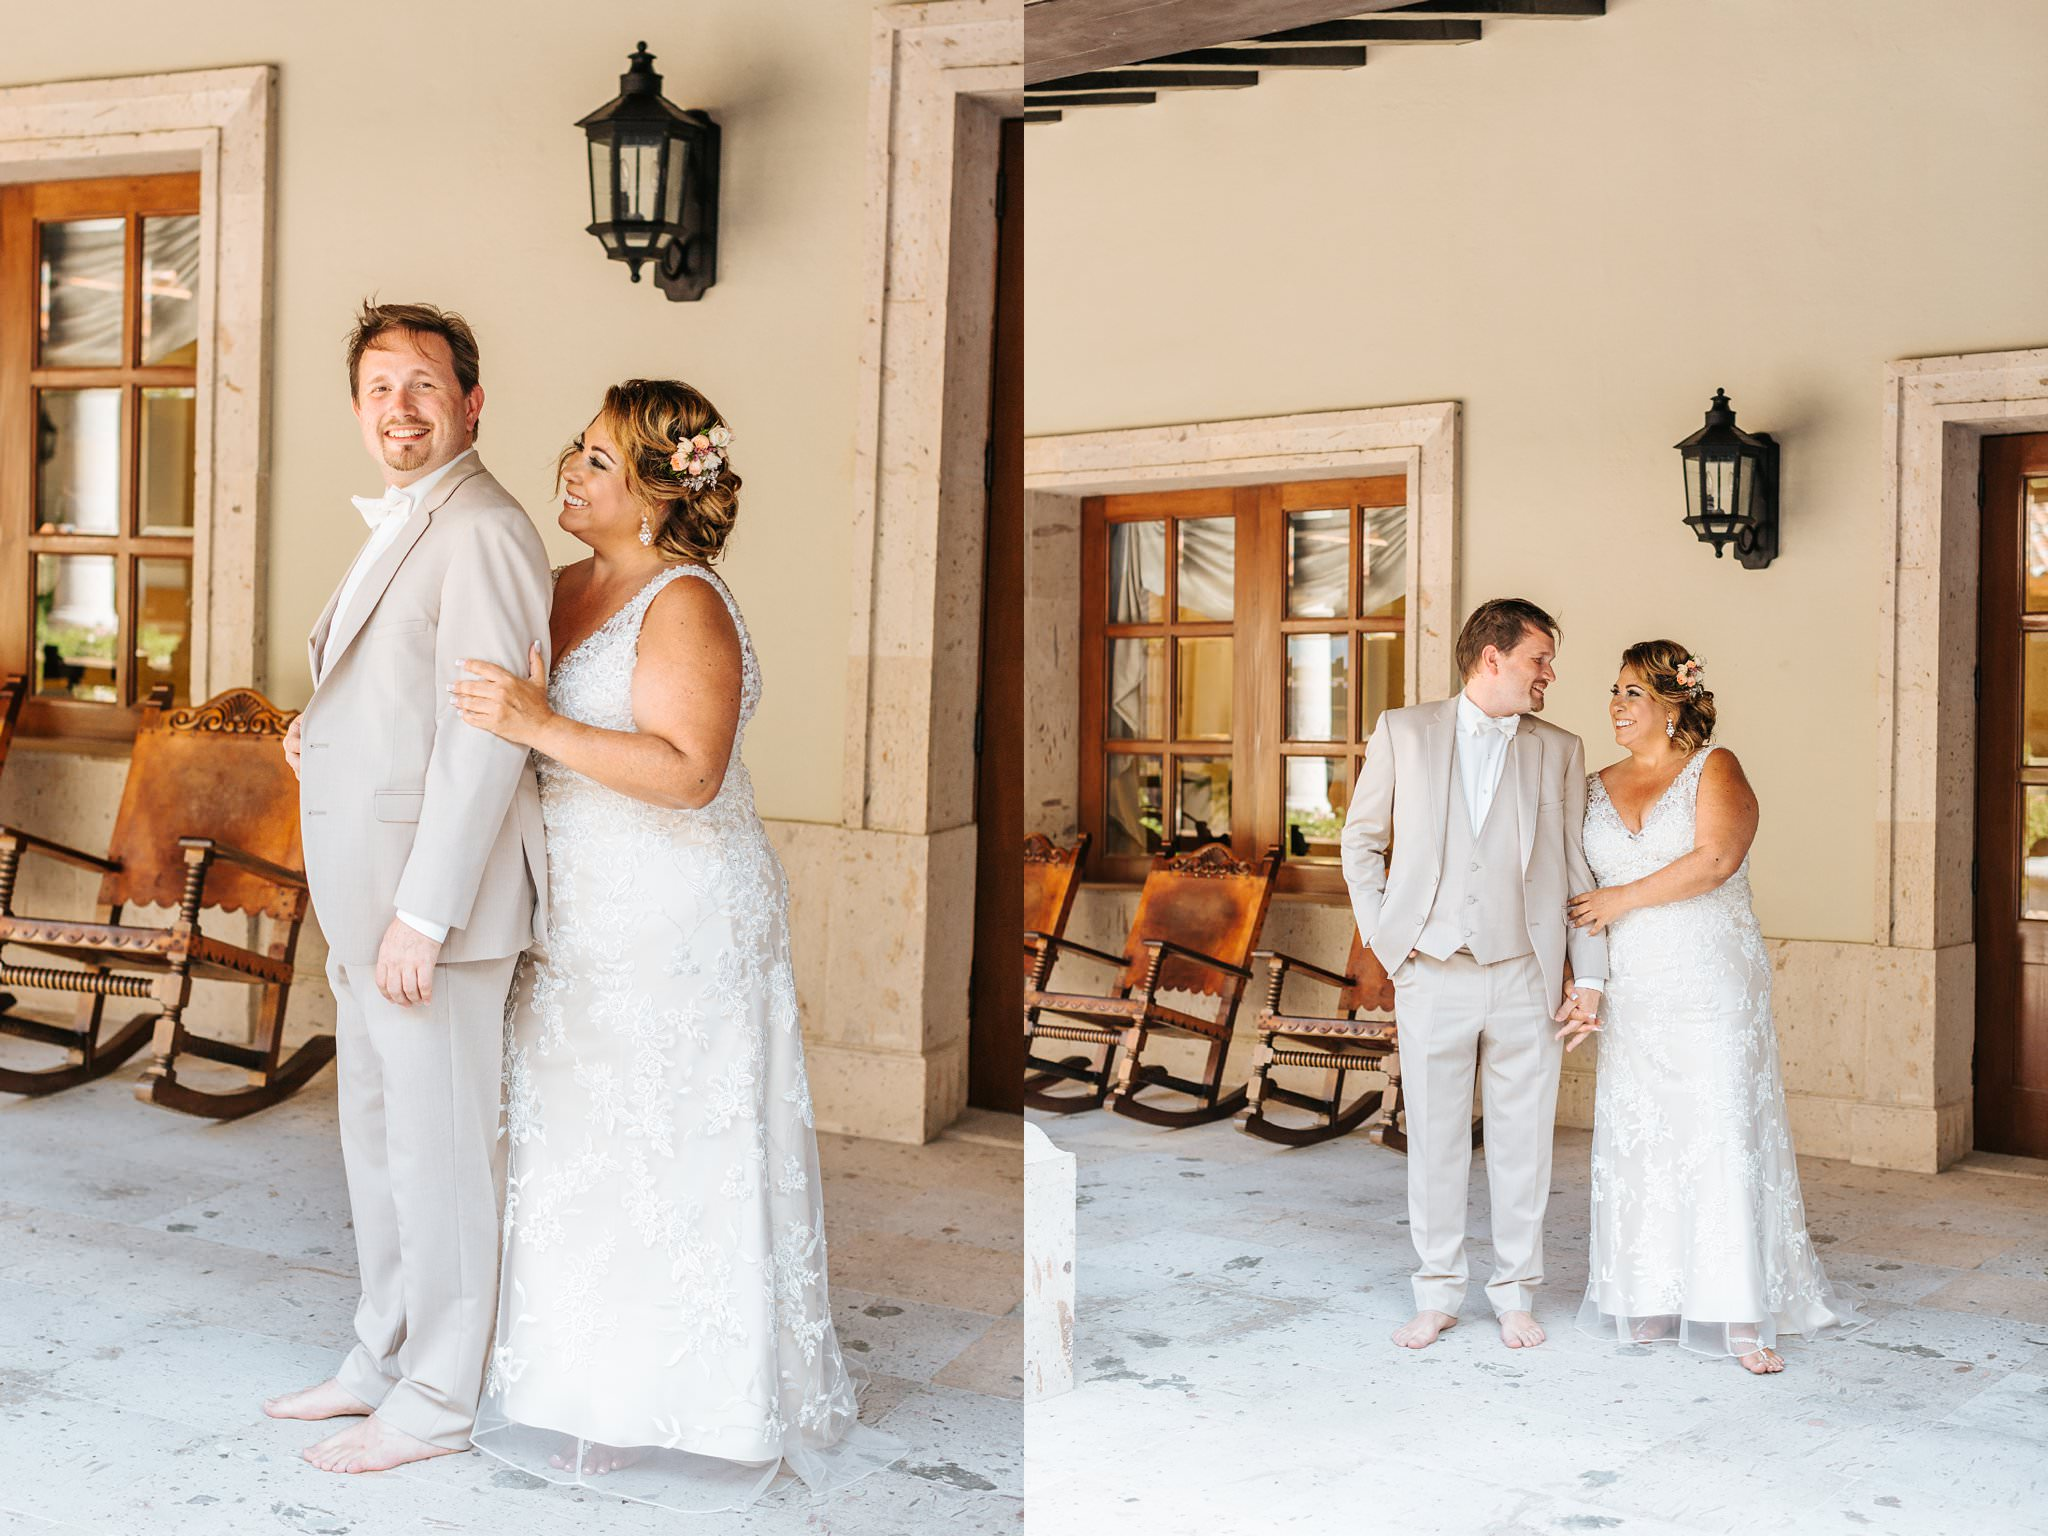 Sweet Bride and Groom Photos at Cabo Beach Resort in Mexico - https://brittneyhannonphotography.com